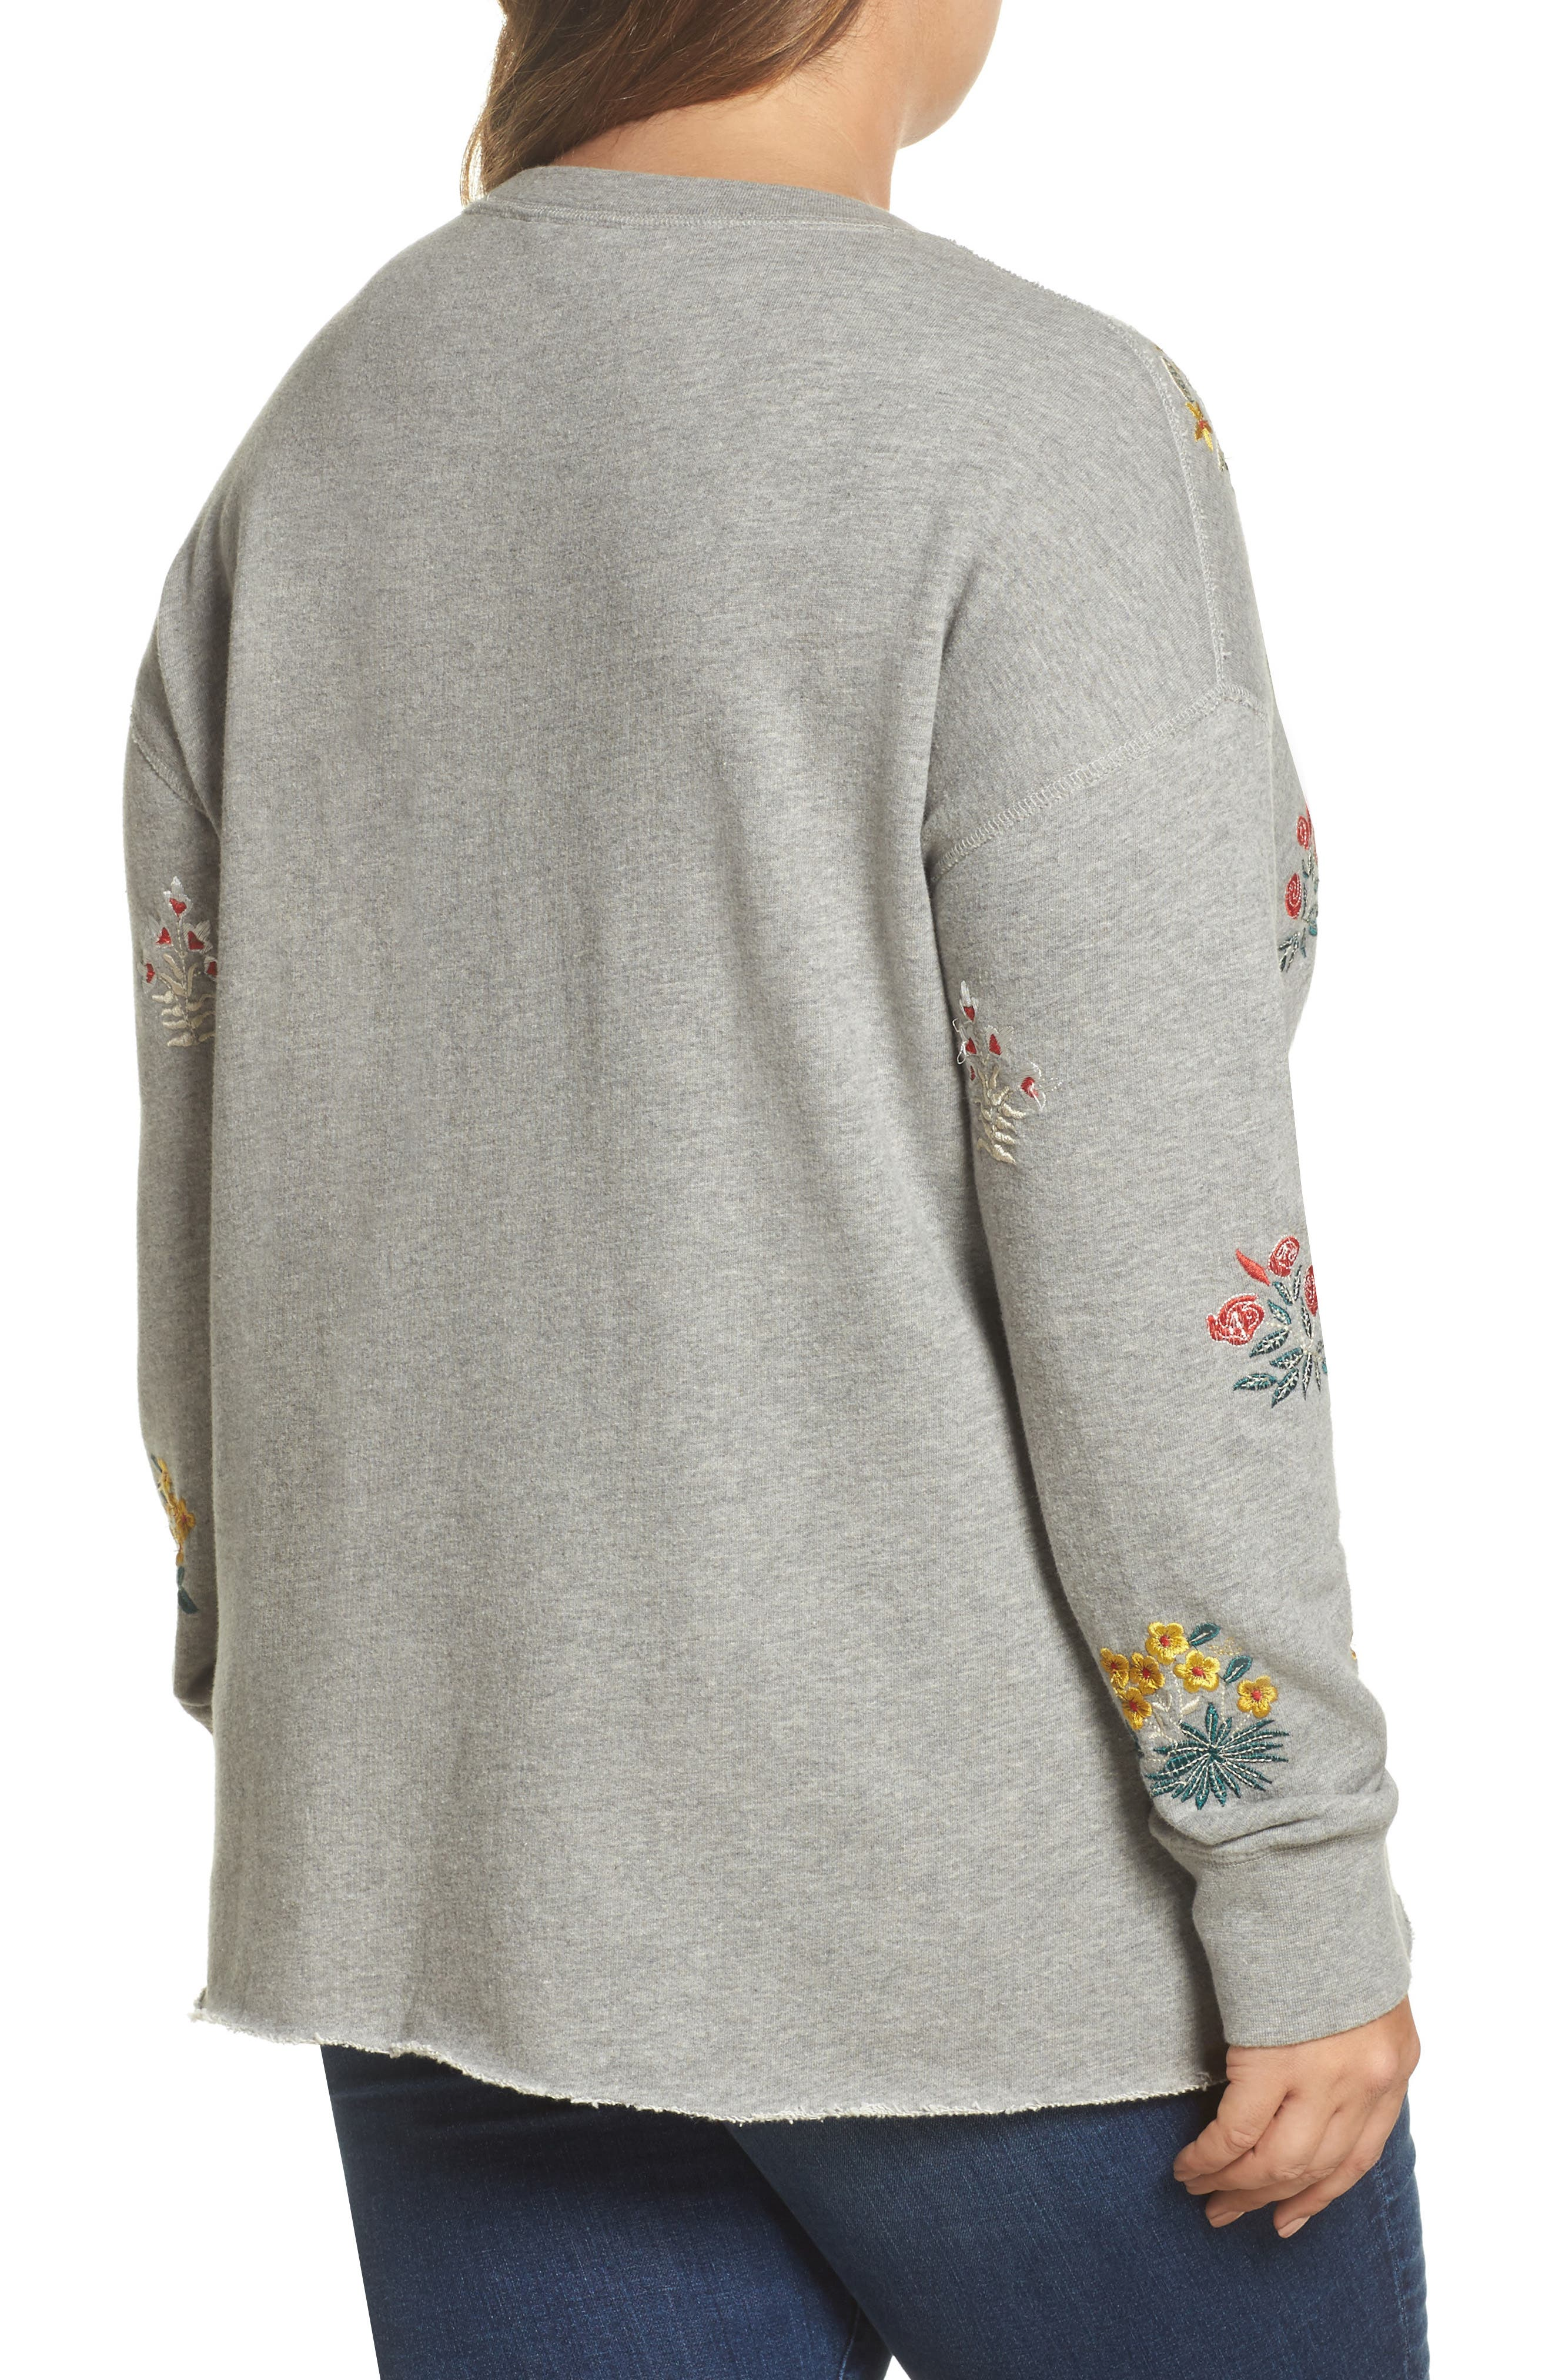 Embroidered Sweatshirt,                             Alternate thumbnail 2, color,                             Heather Grey